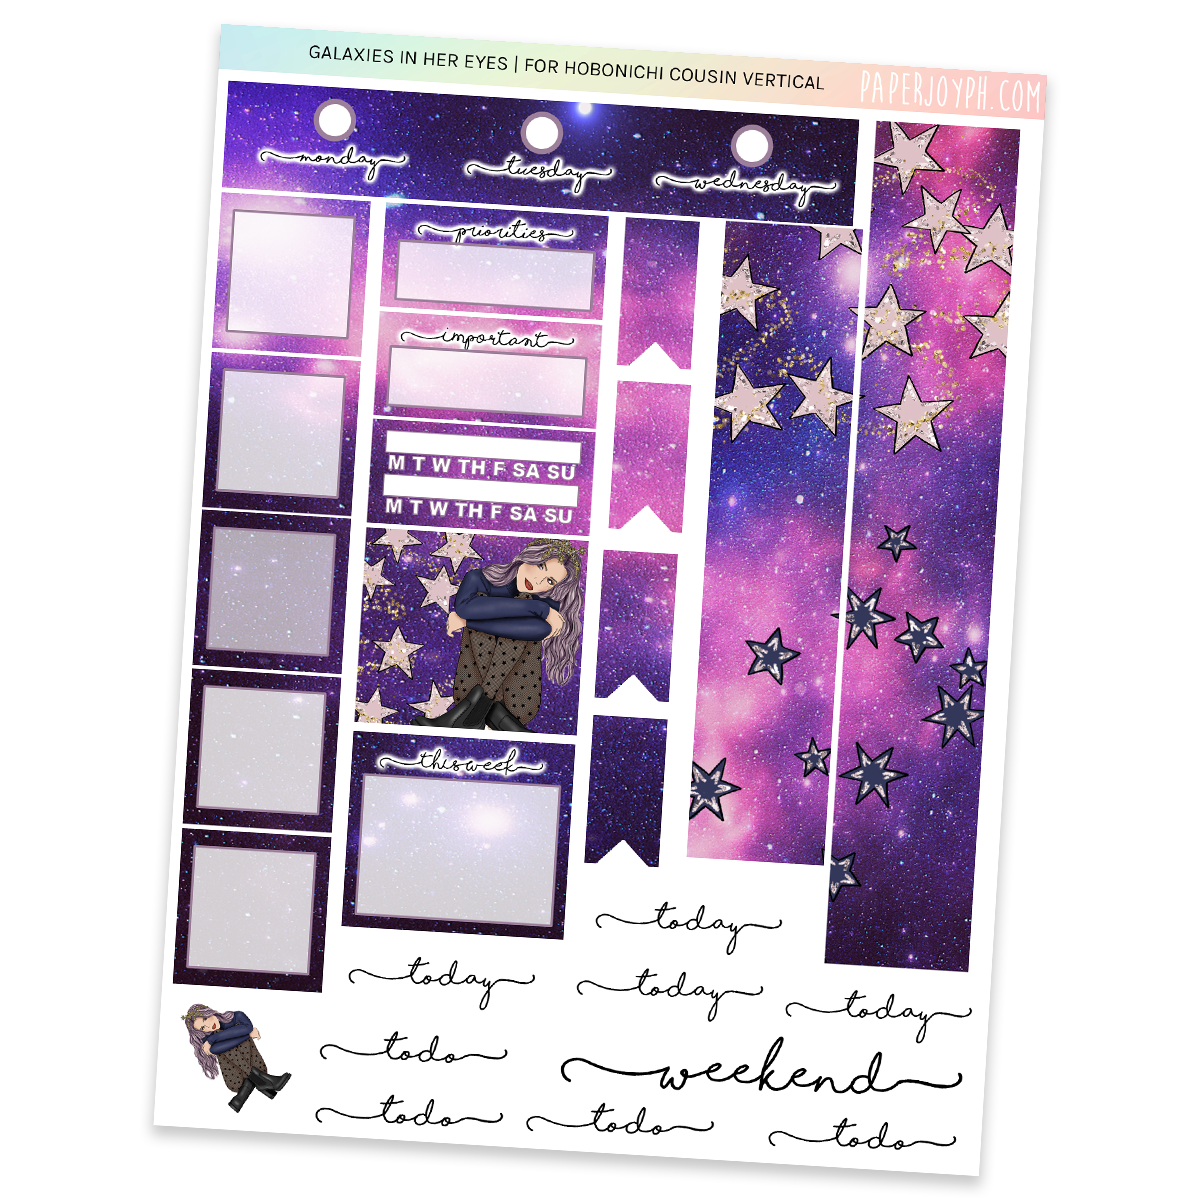 HOBONICHI COUSIN | VERTICAL STICKER KIT | GALAXIES IN HER EYES